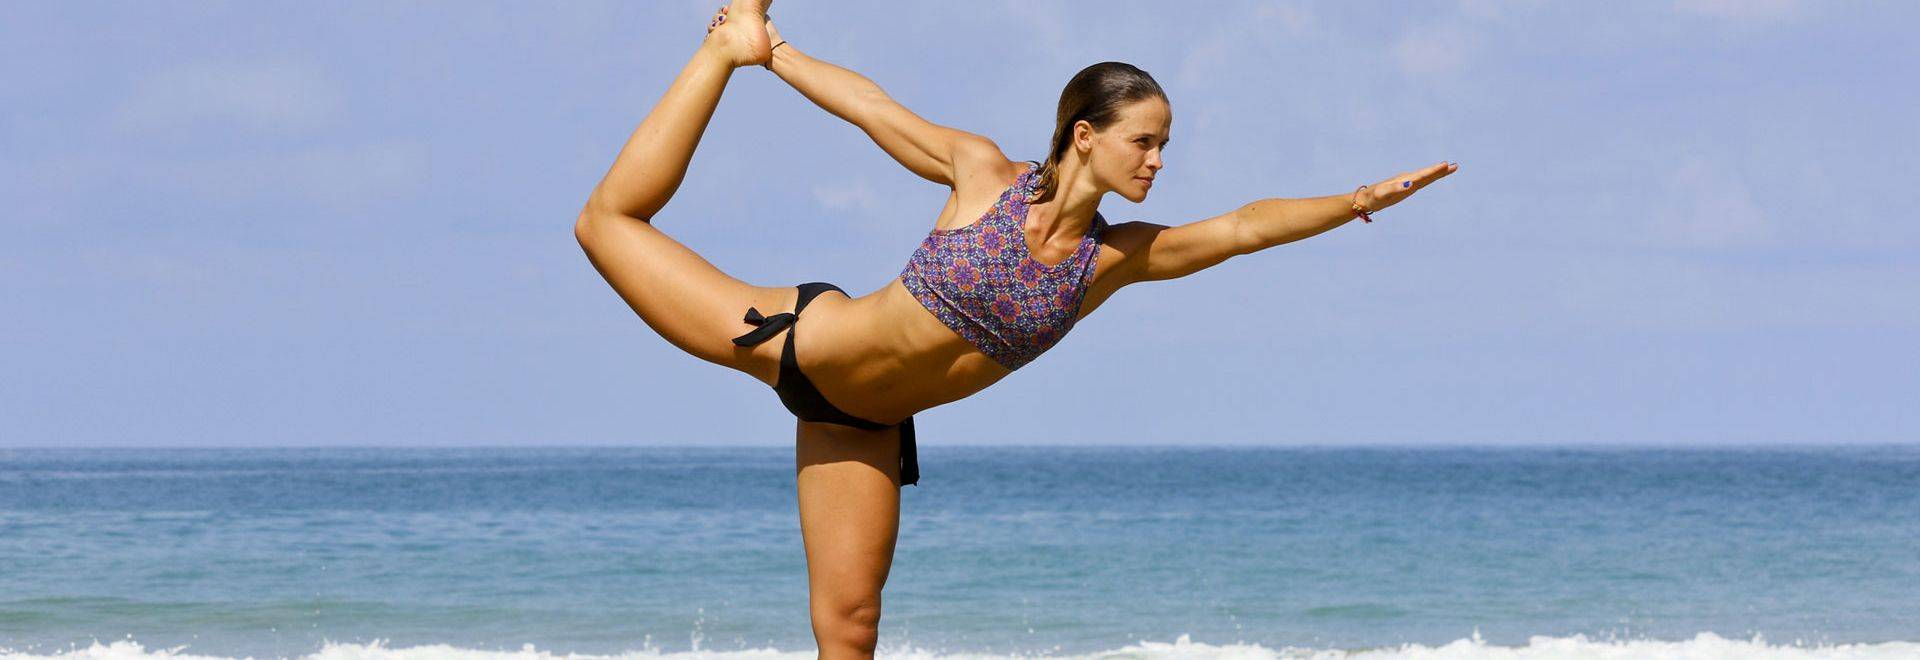 Phuket-Cleanse-yoga-dancer-pose.jpg